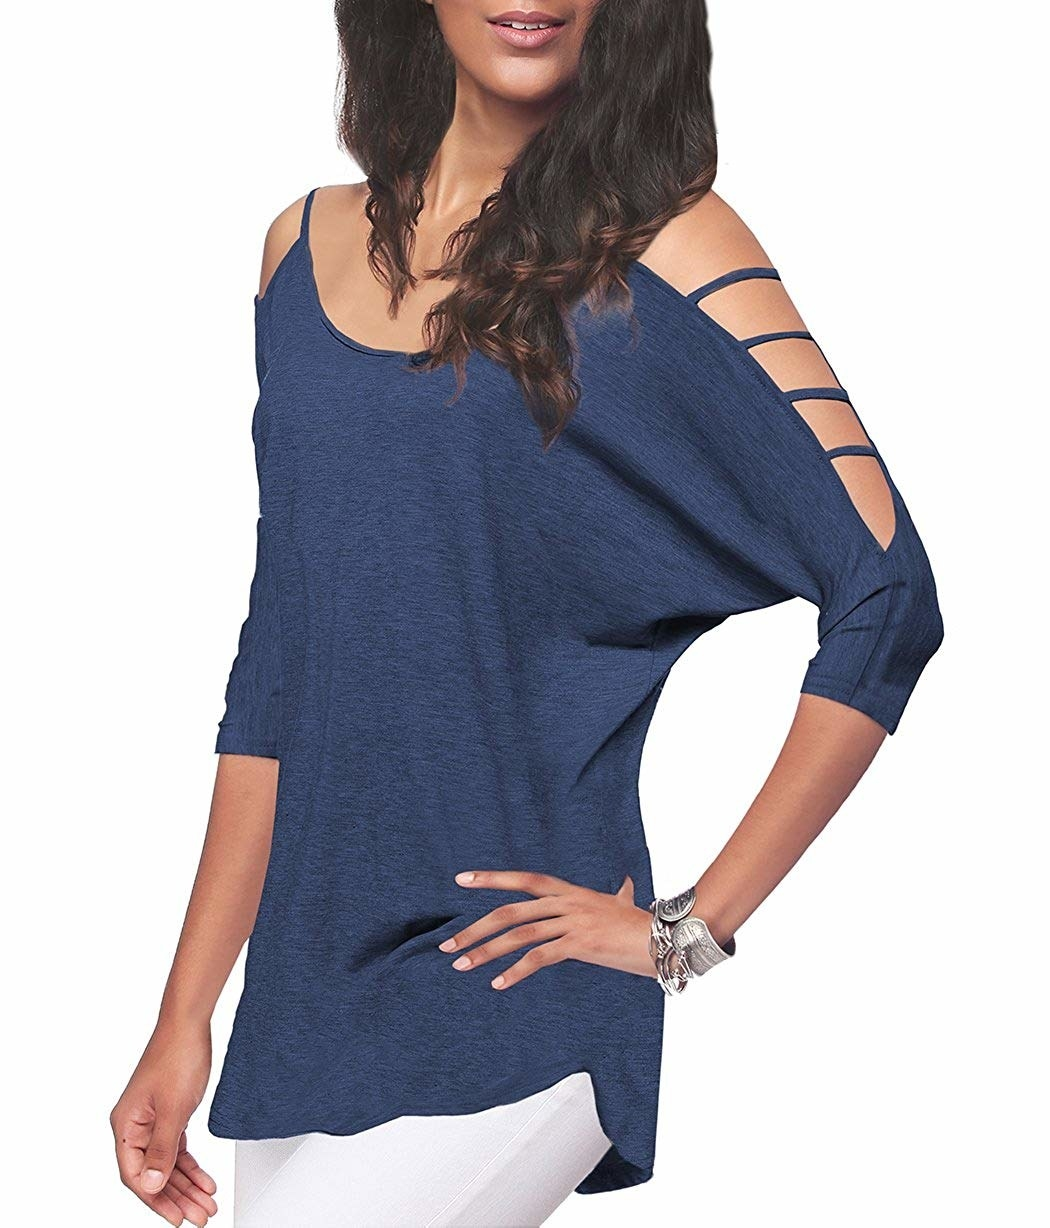 A model wearing the cutout sleeve top in blue.